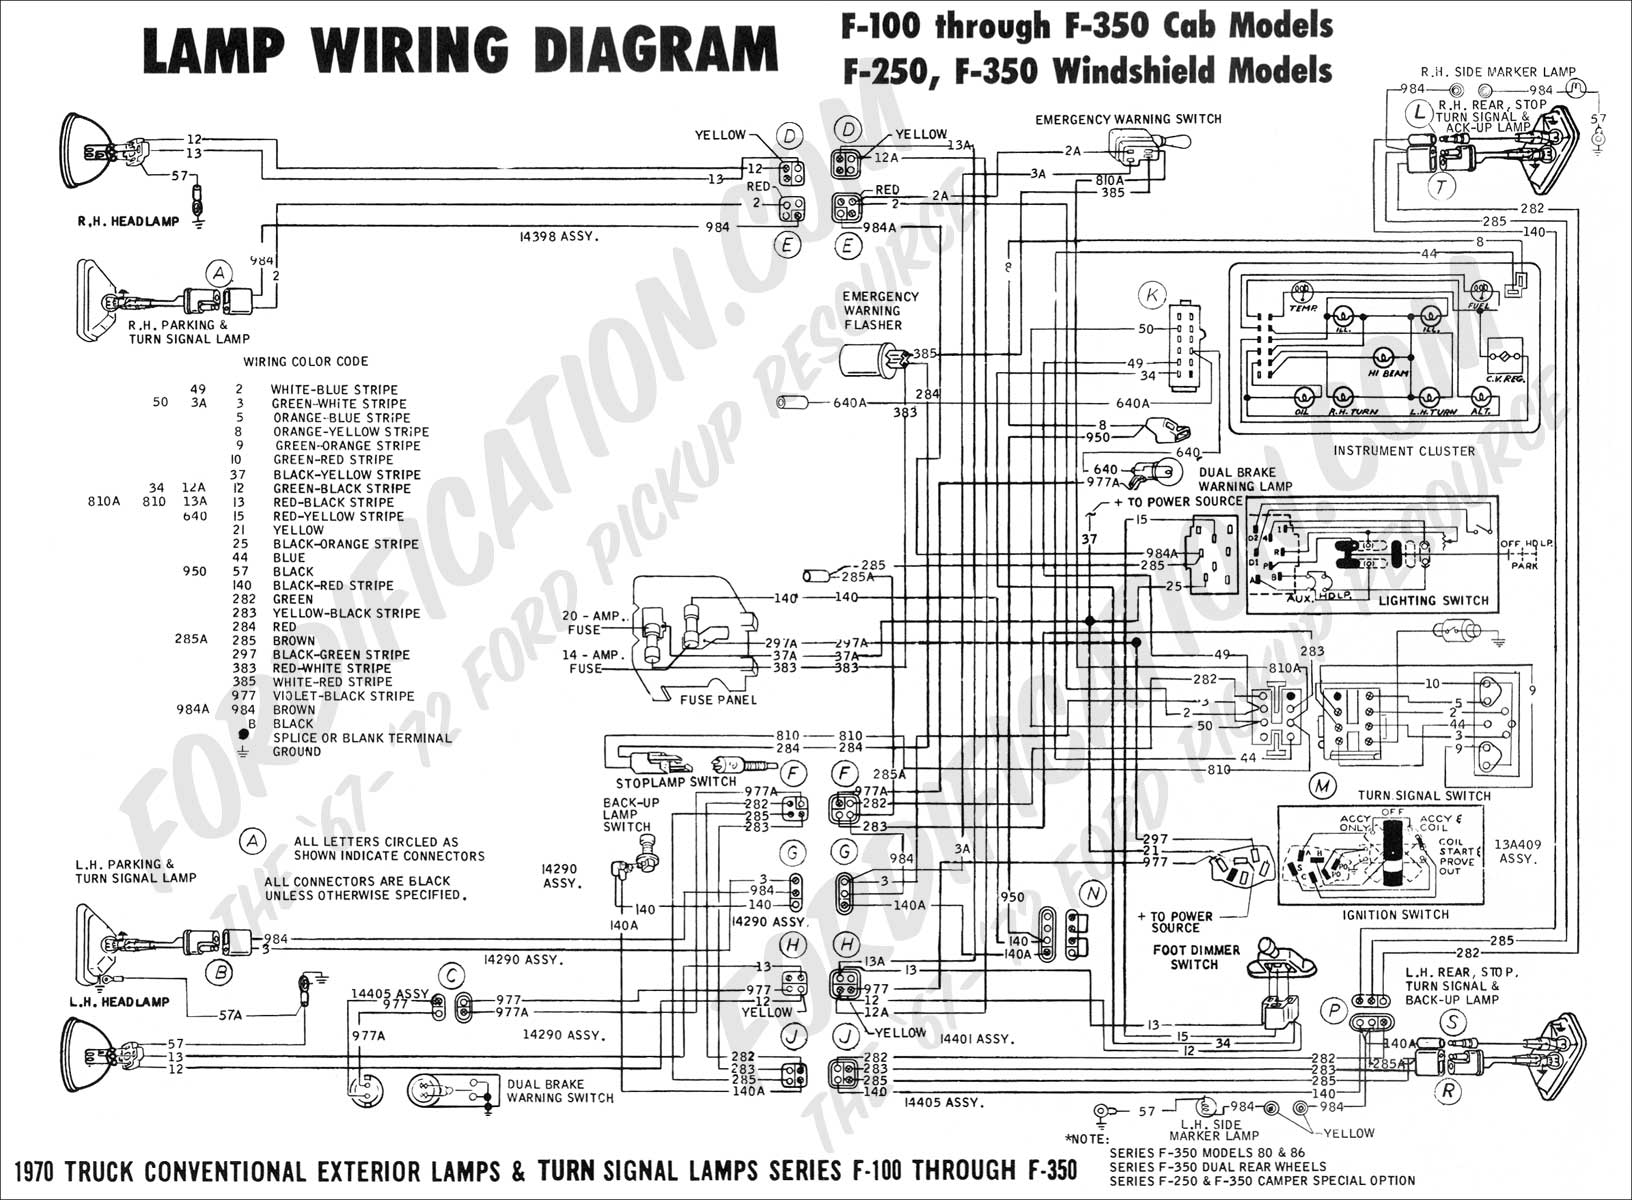 wiring diagram_70ext lights01 ford truck technical drawings and schematics section h wiring 1972 ford f100 wiring harness at webbmarketing.co